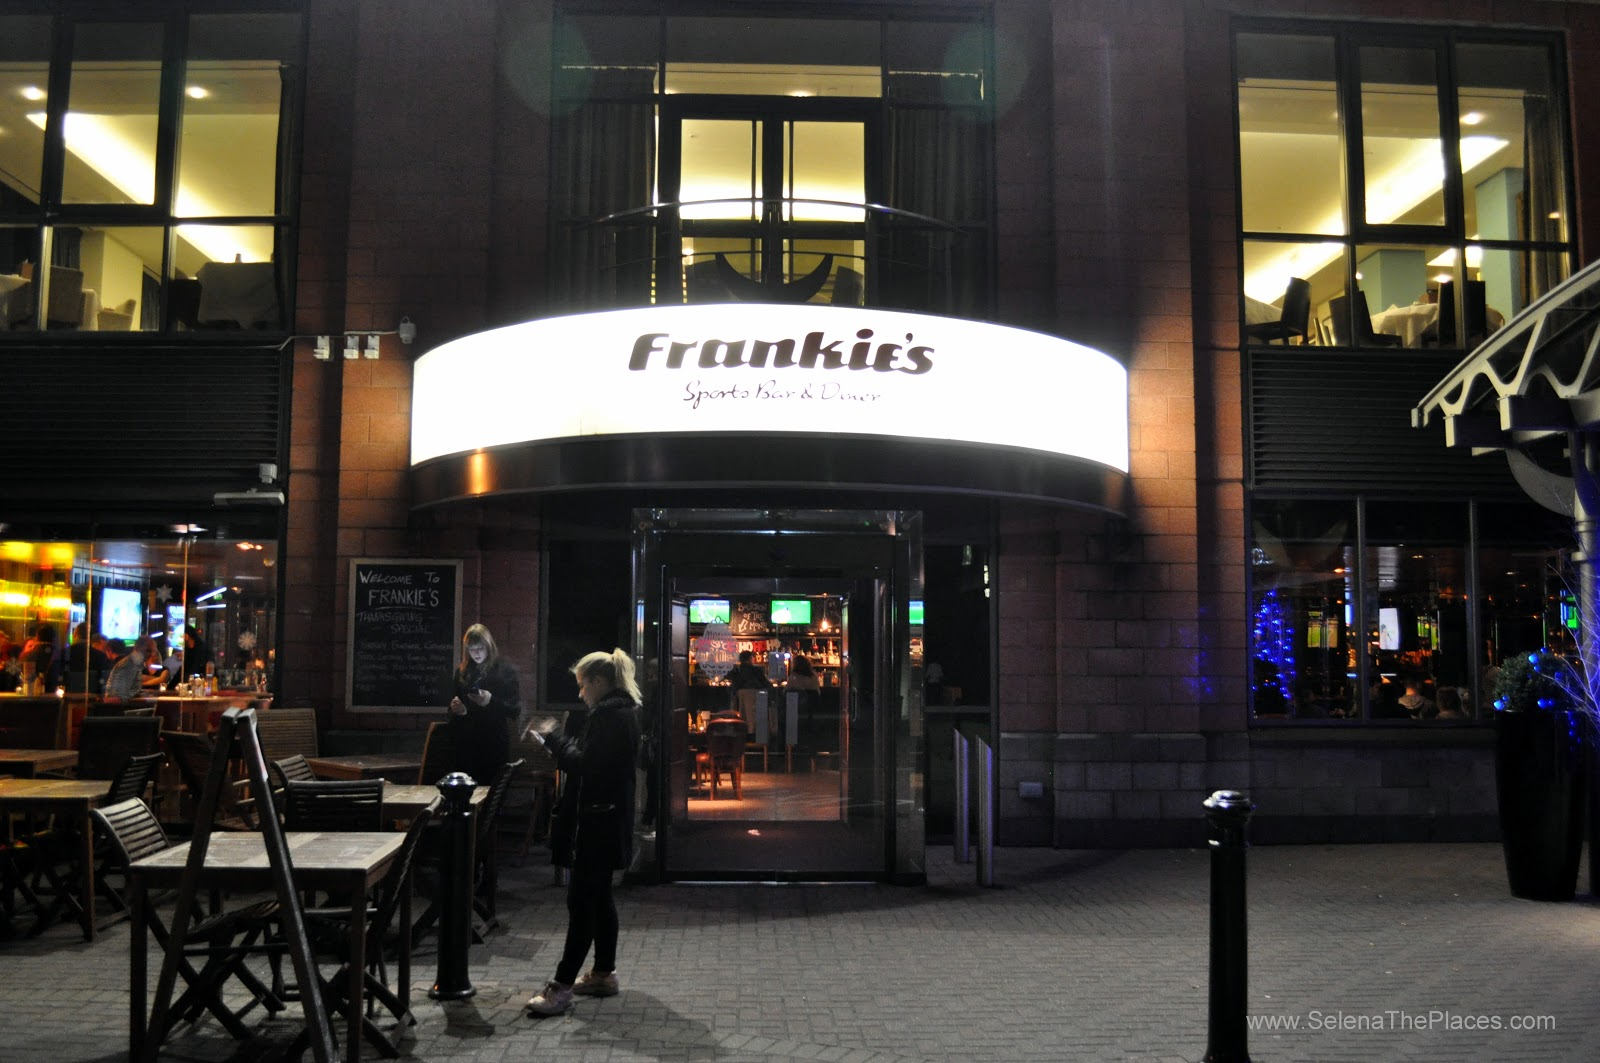 Frankie's Sports Bar & Diner, London